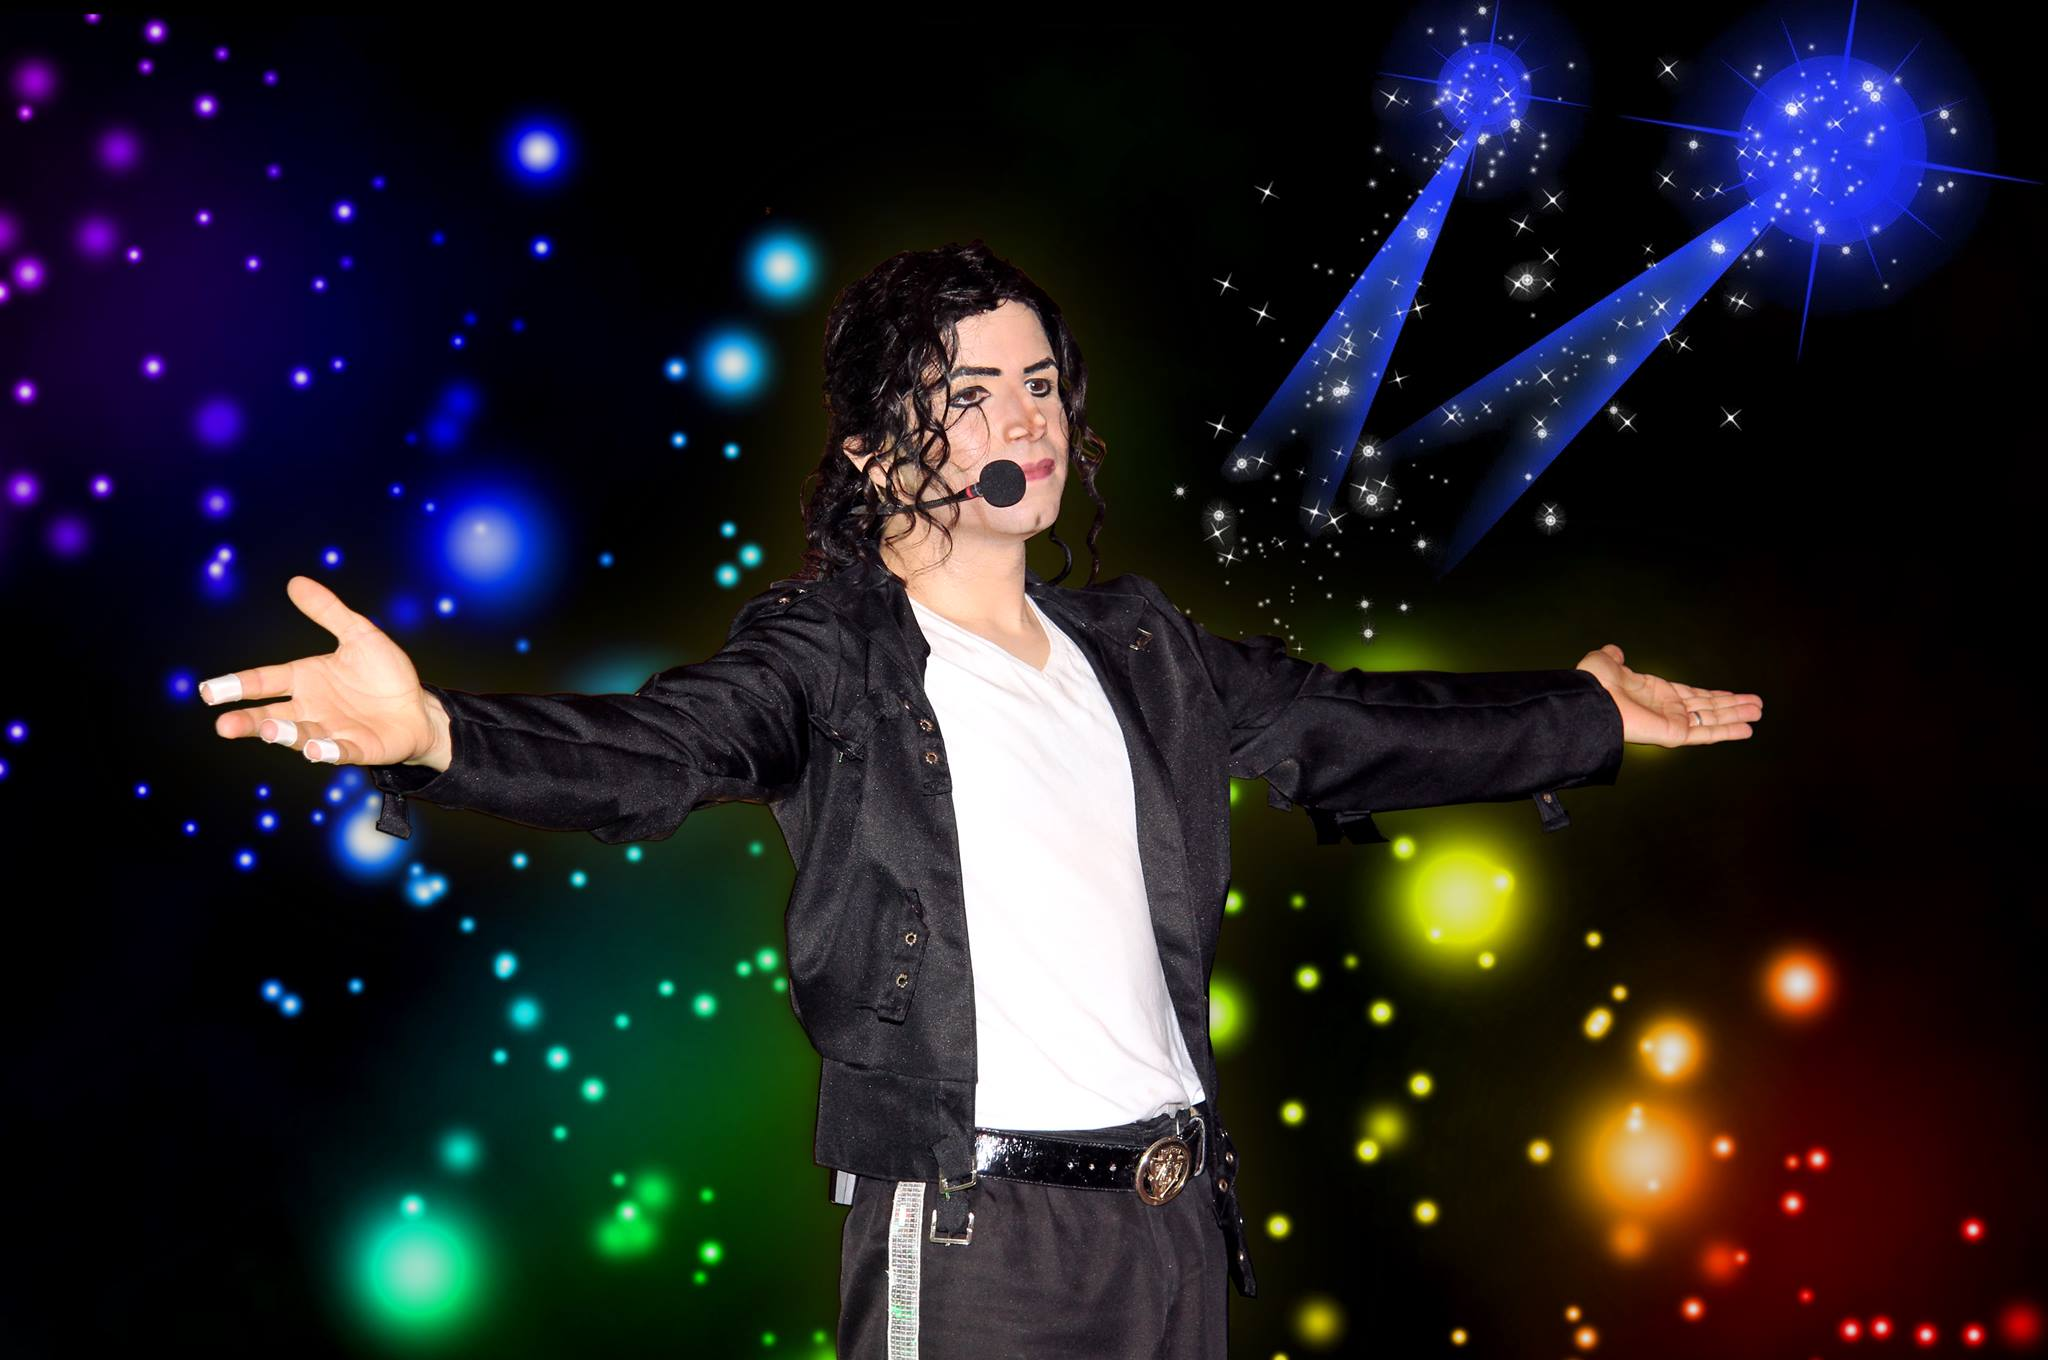 Permalink to: Michael Jackson Tribute Show